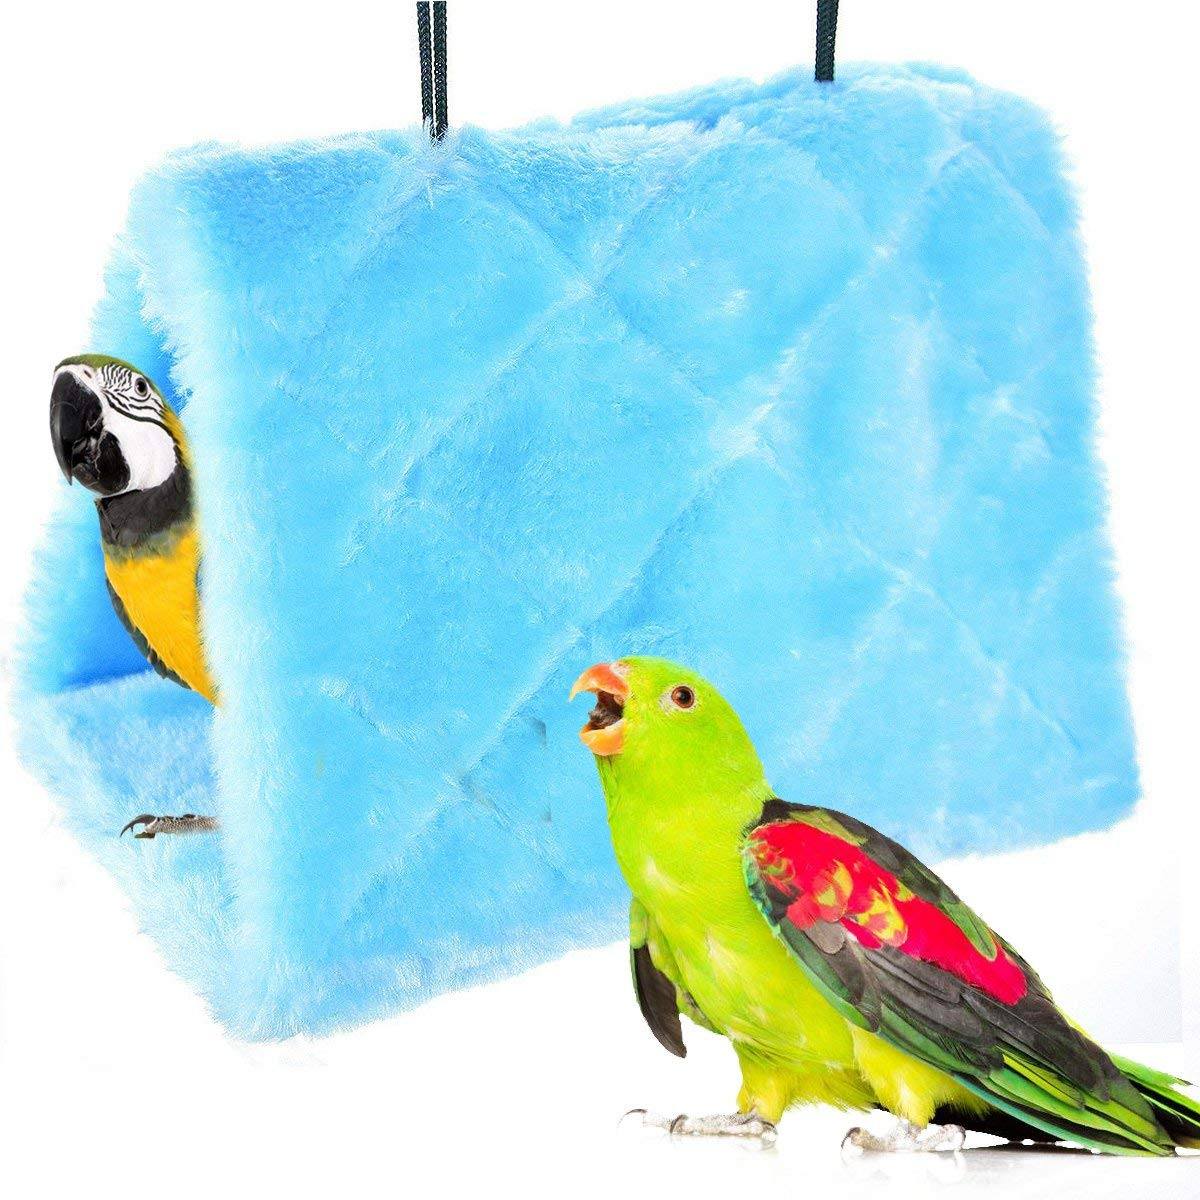 Winter Warm Bird Nest House Shed Hut Hanging Hammock Finch Cage Plush Fluffy Birds Hut Hideaway for Hamster Parrot Macaw Budgies Eclectus Parakeet Cockatiels Cockatoo Lovebird (M, Blue)